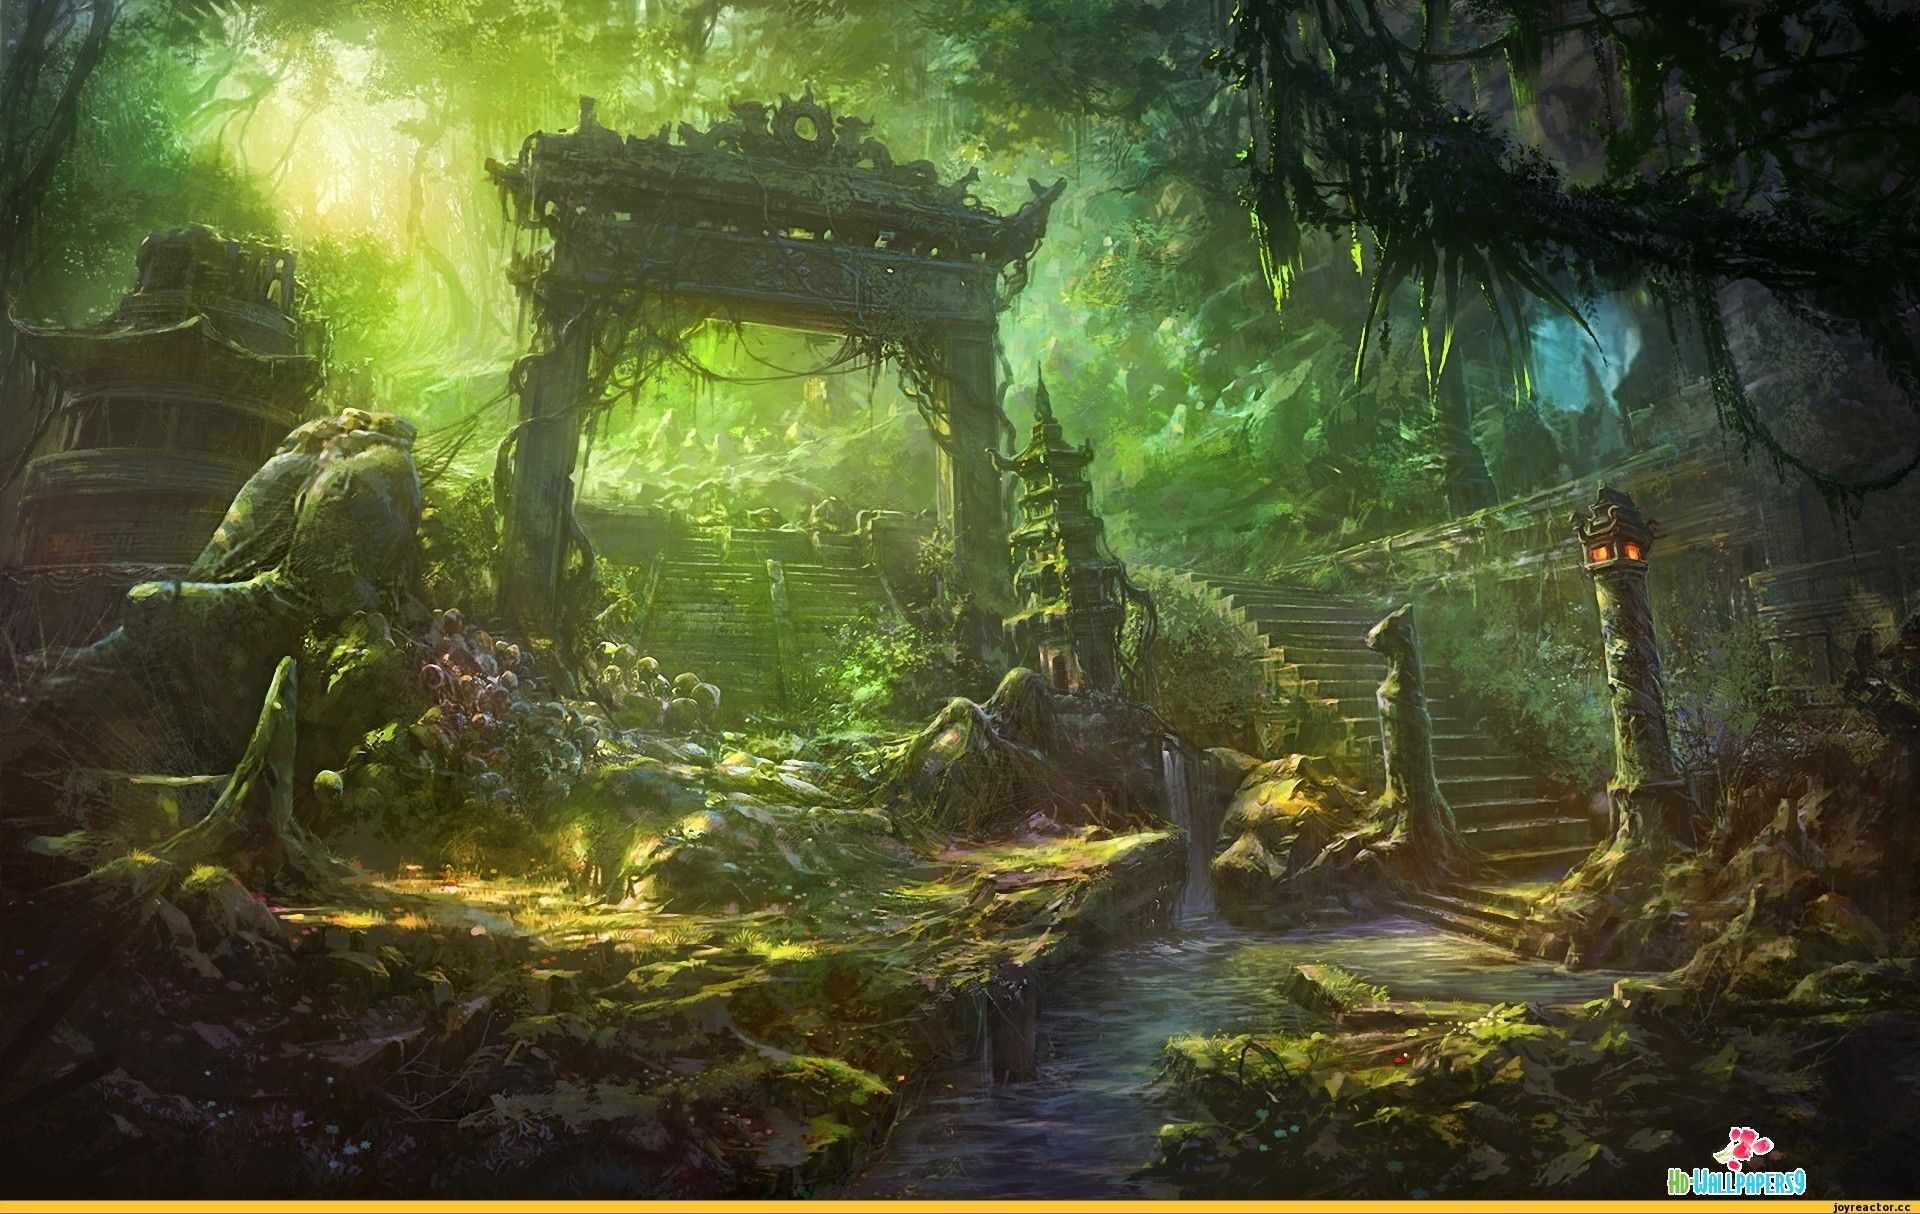 Art Wallpapers-015 ,Painting, Get free Wallpapers for your